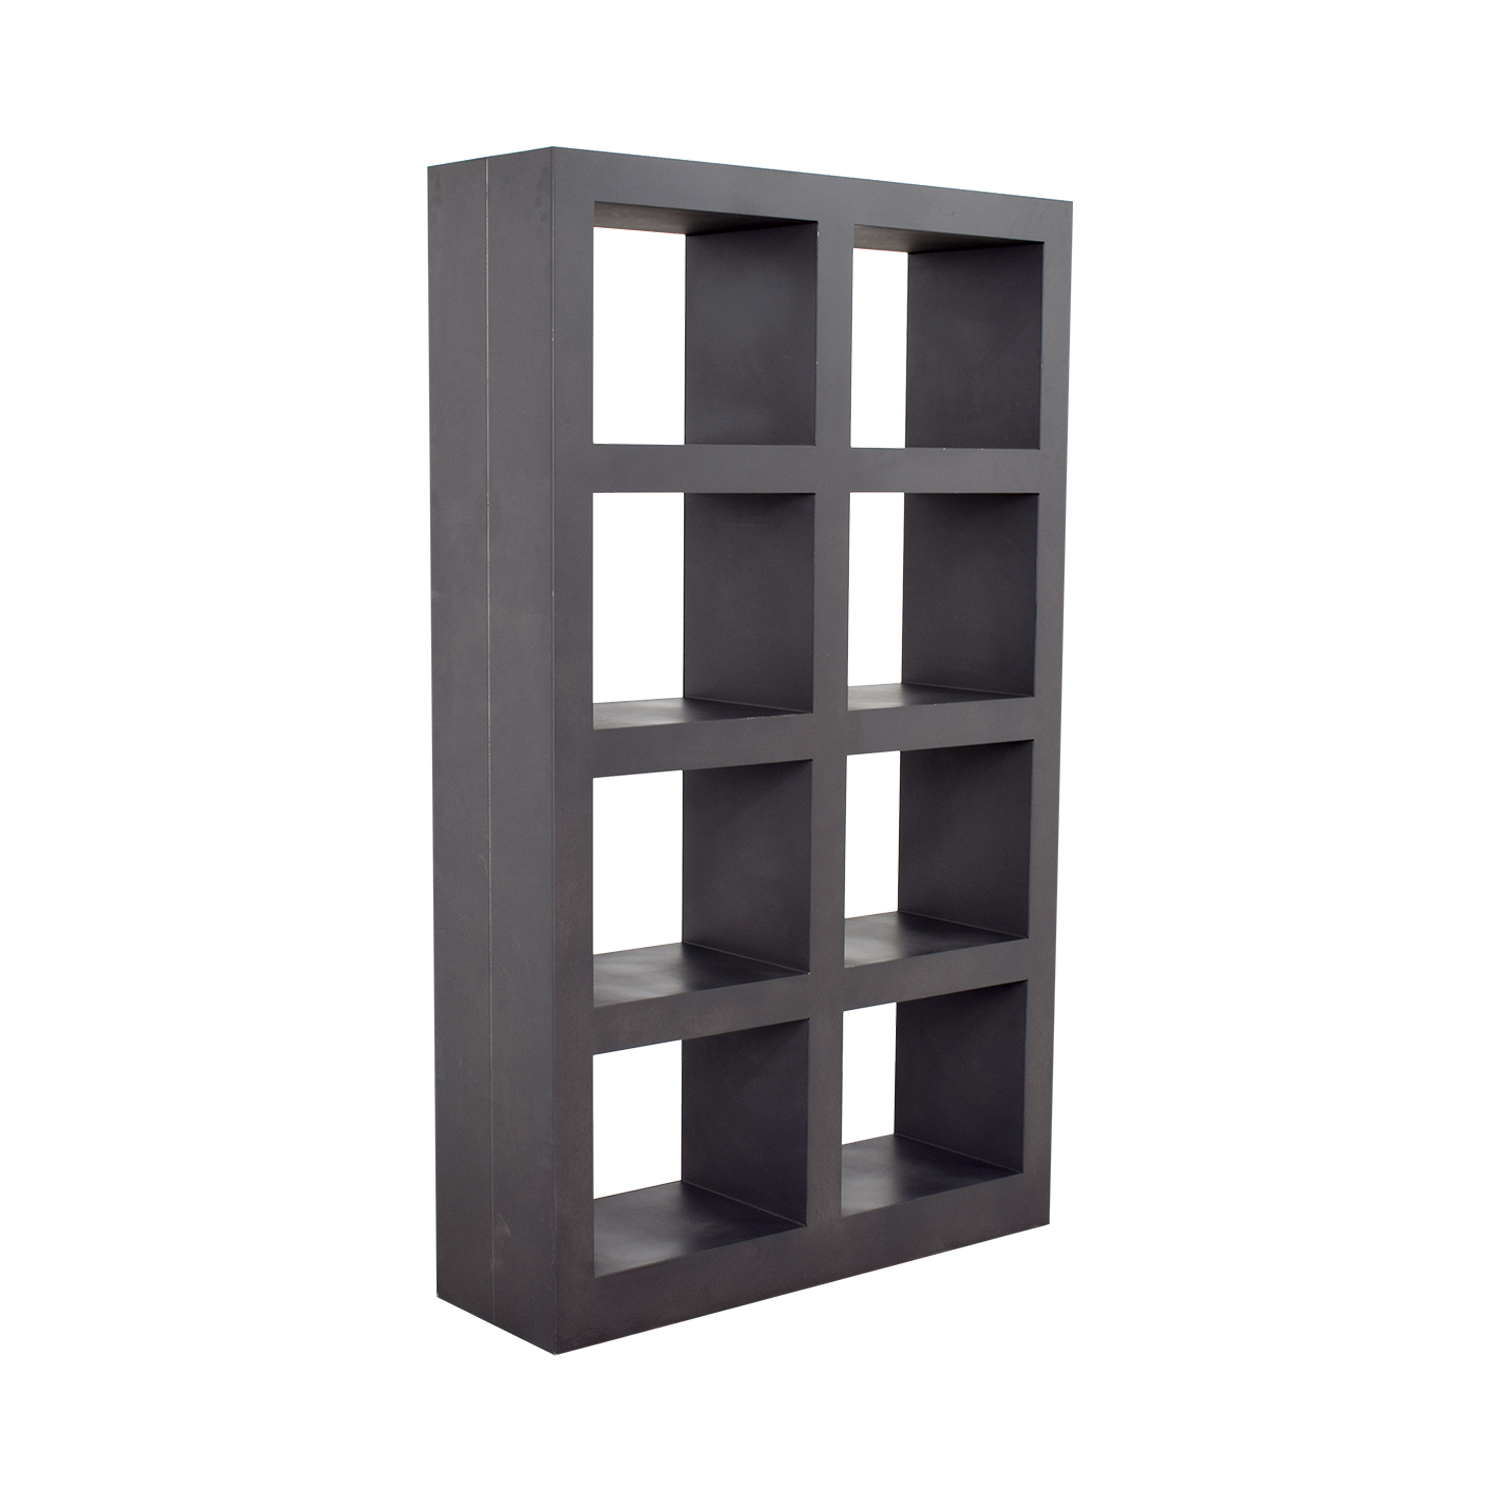 shop Crate & Barrel Shadow Box Bookcase Crate & Barrel